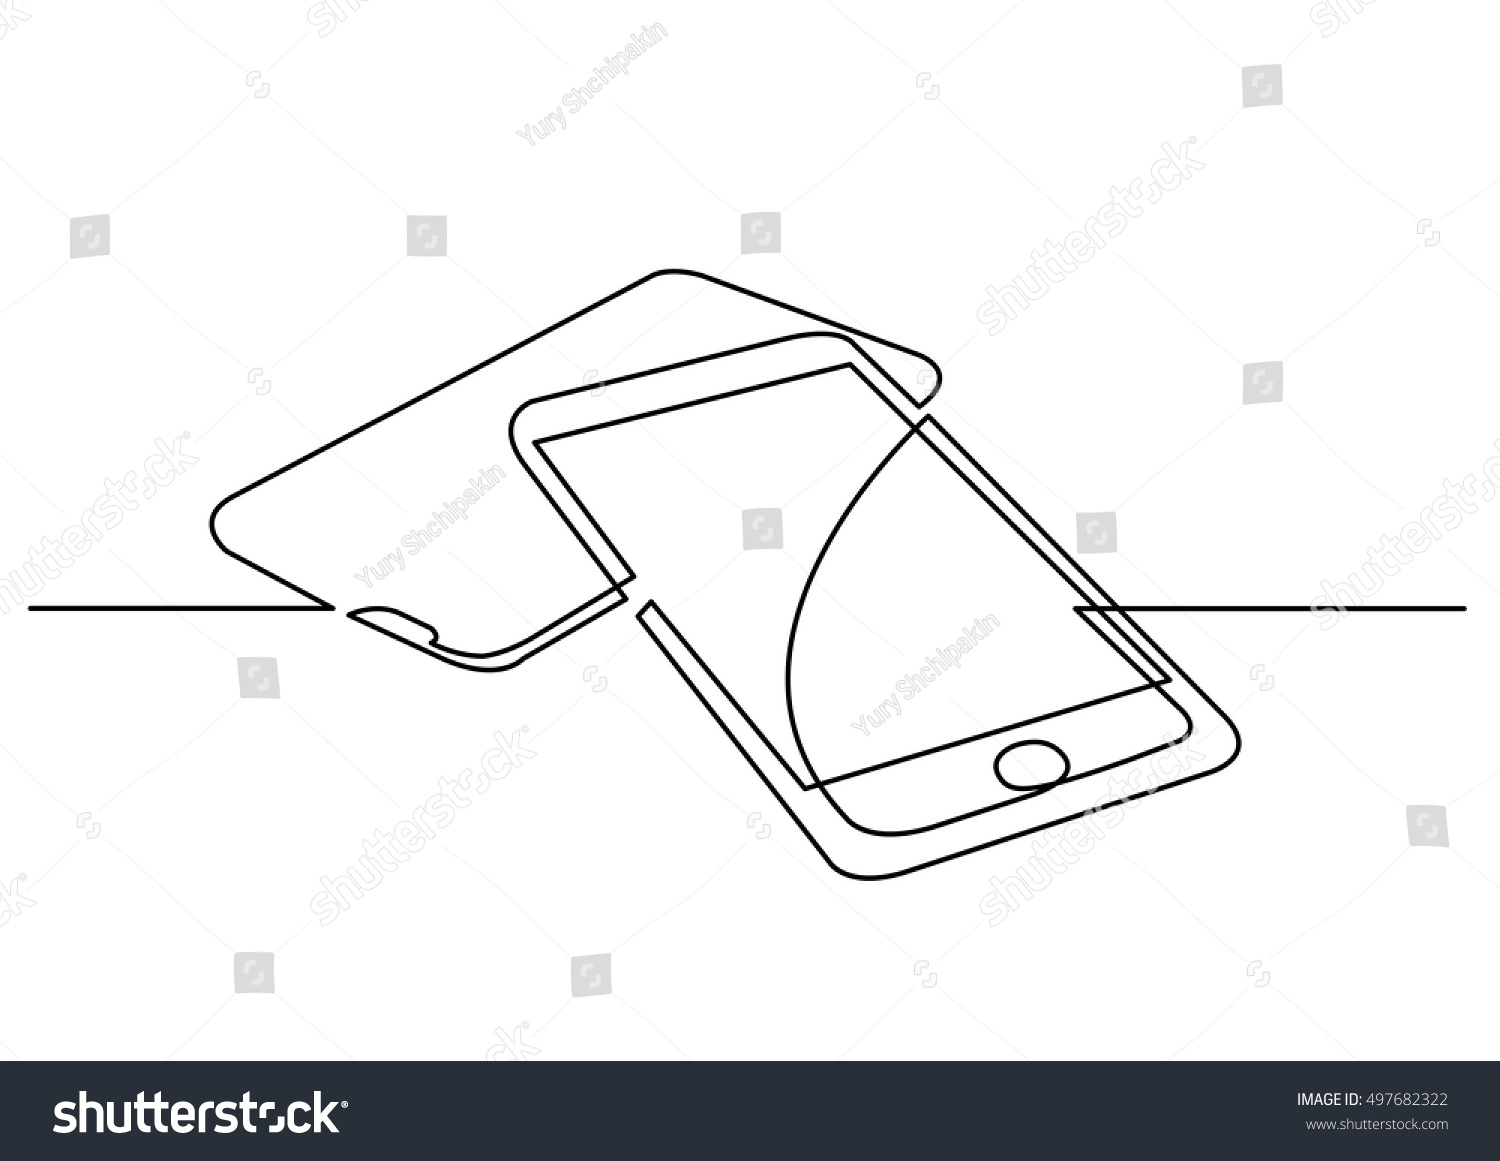 Line Art Digital : Continuous line drawing digital devices stock vector